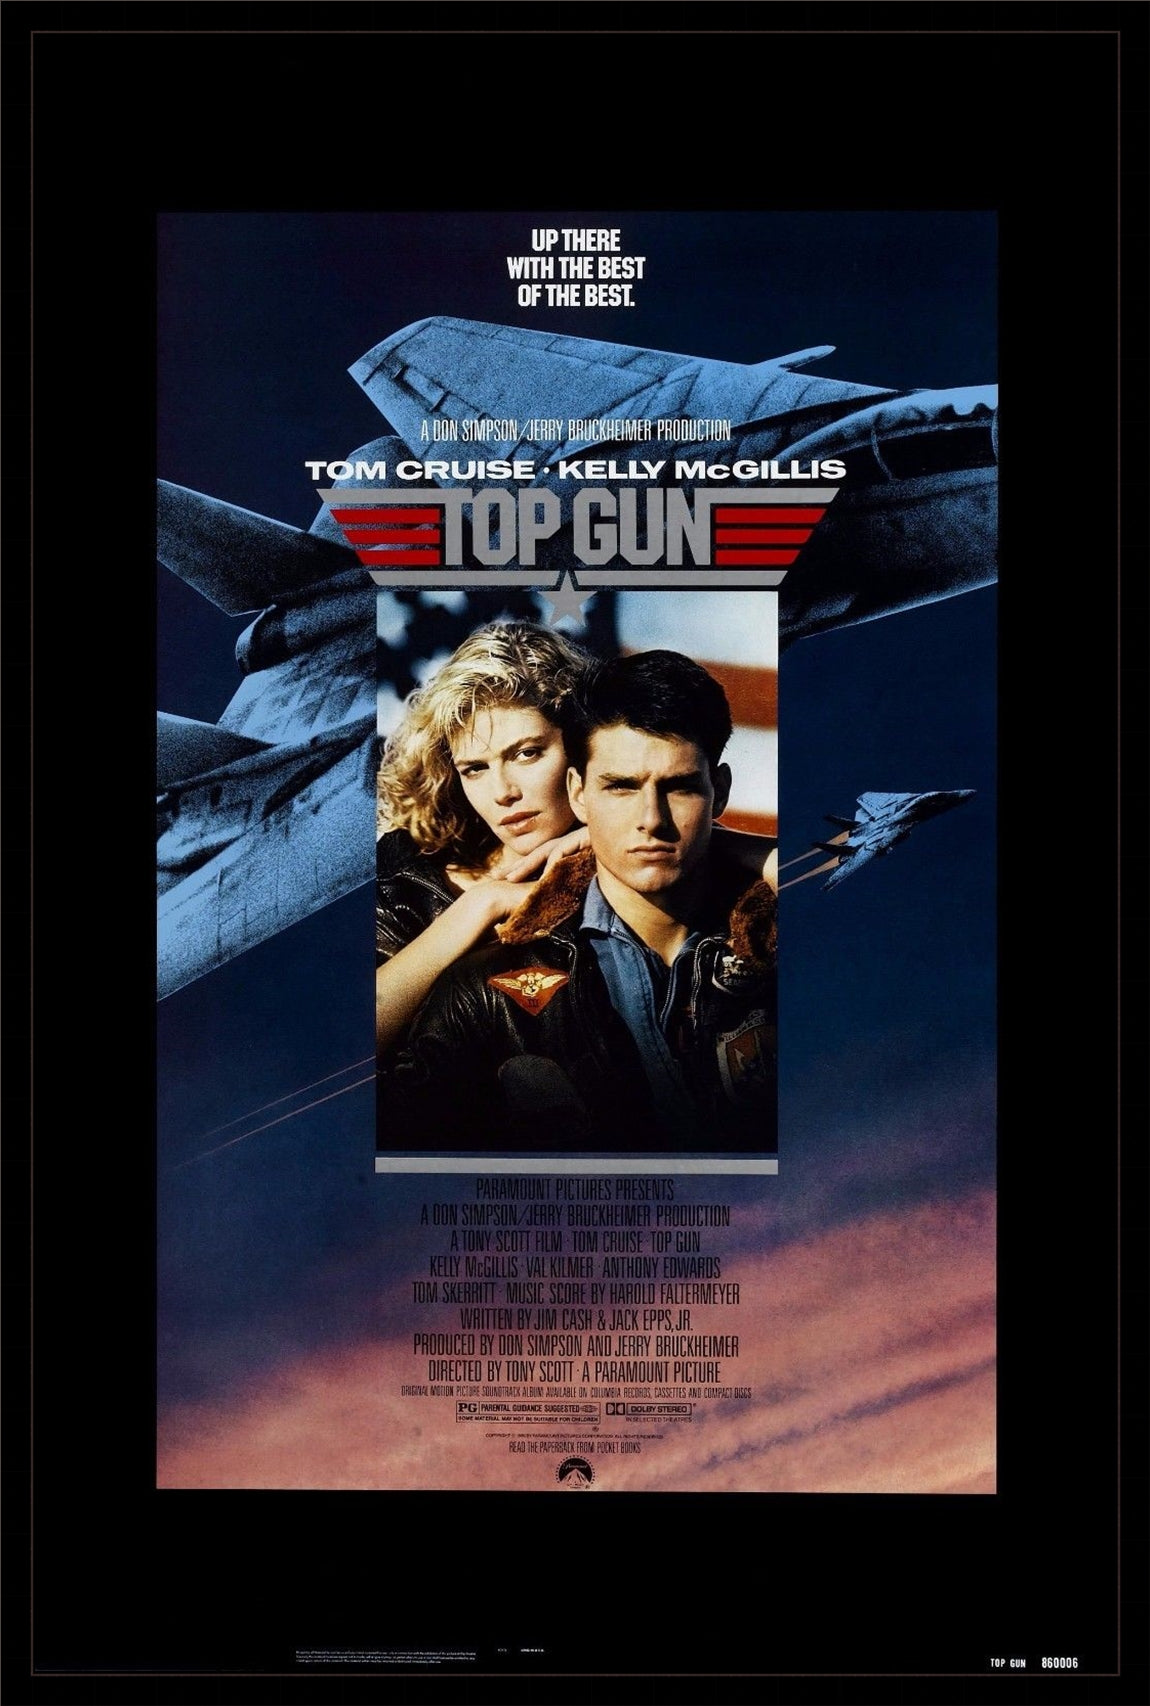 An original movie poster for the film Top Gun